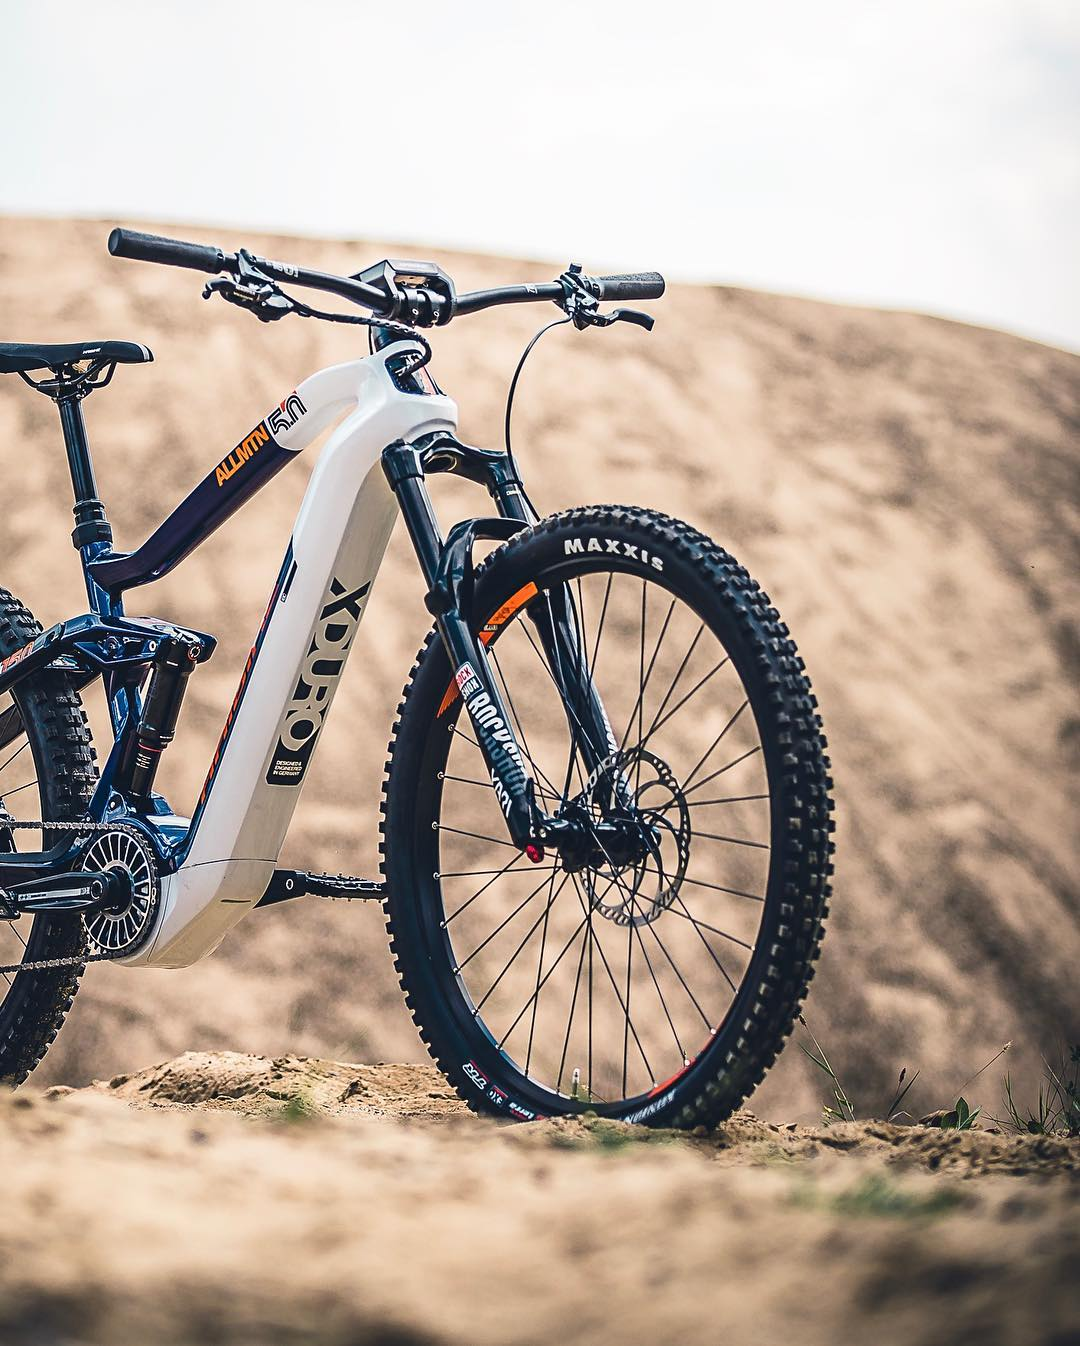 For 2019 the AllMtn FLYON models come with 29er front wheels. Advantages include reduced rolling resistance, increased stability while retaining quick handling, and an enhanced ability to roll over obstacles, all translating into a smoother, faster ride for you out on the trails.  @hdc_m #emtb #ebike #allmountain #enduro #mountainbike #emountainbike #pedelec #flyon